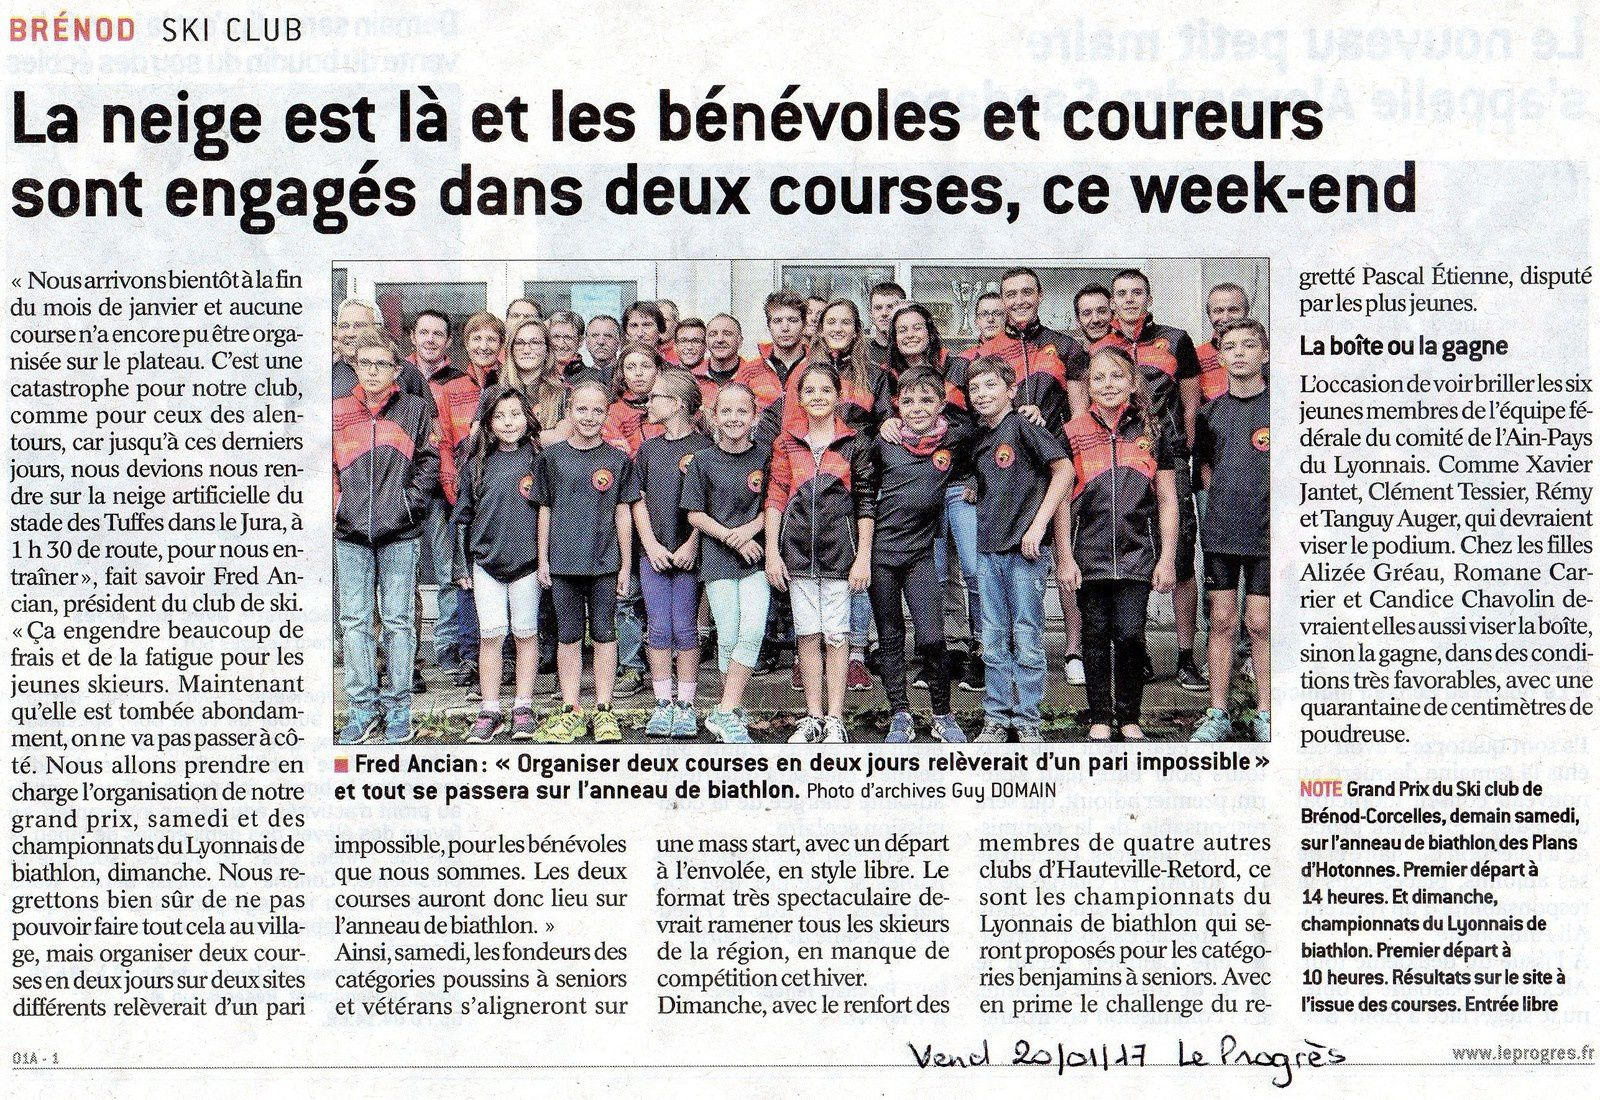 Articles du 20 janvier... Courses du week-end.